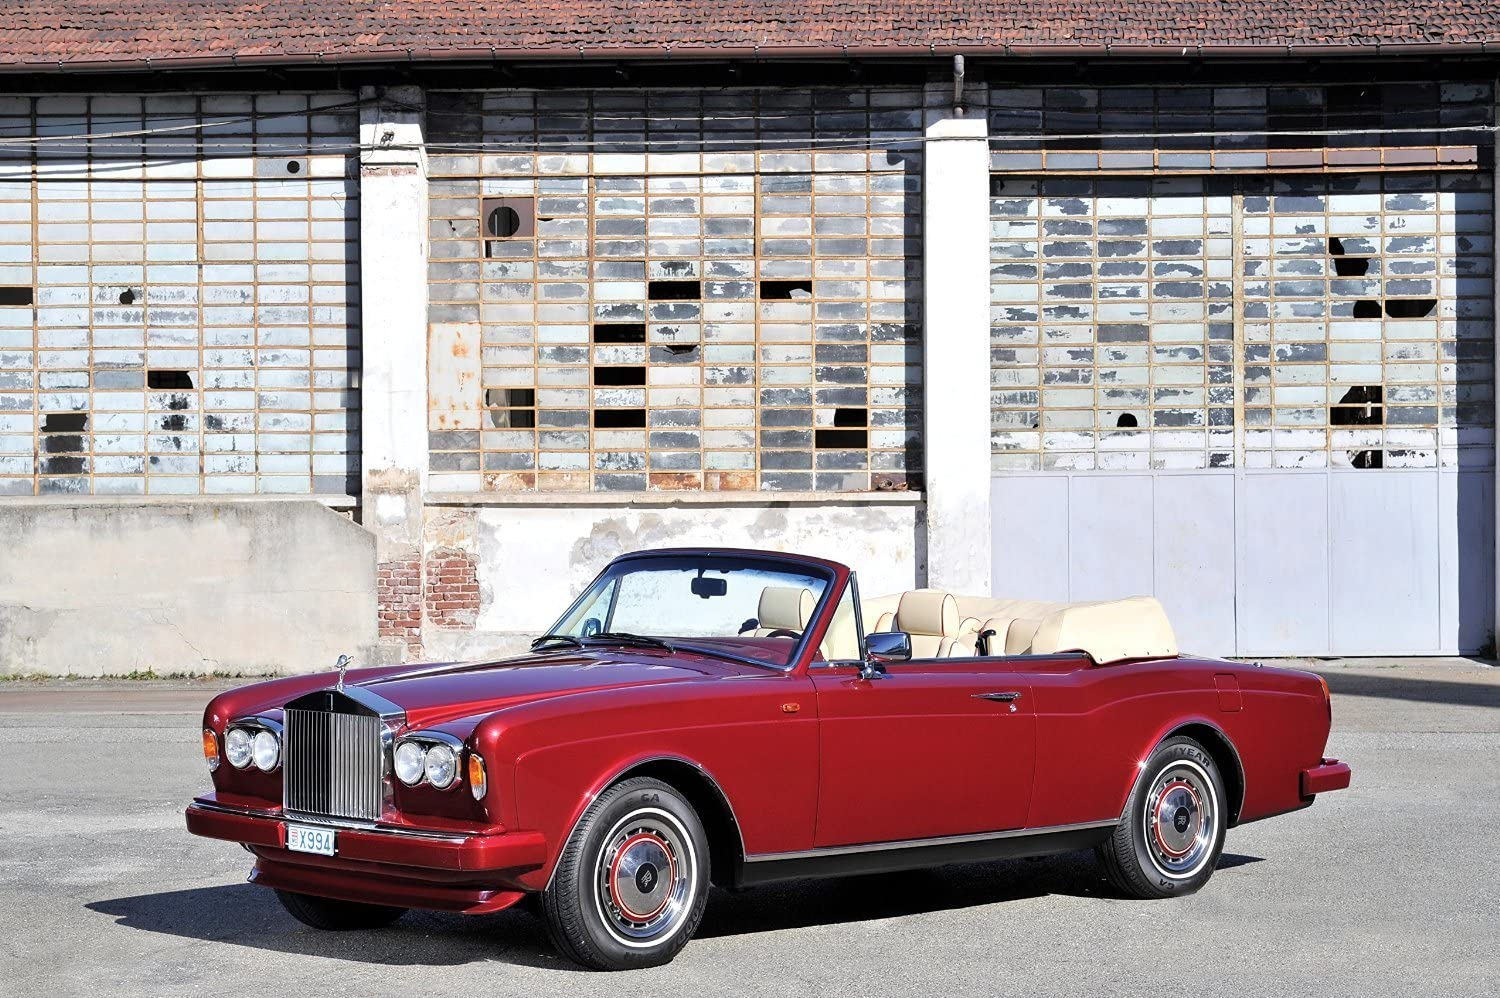 Amazon Com Rolls Royce Corniche Iv 1992 1996 Car Print On 10 Mil Archival Satin Paper Red Front Side Static View 18 X24 Posters Prints